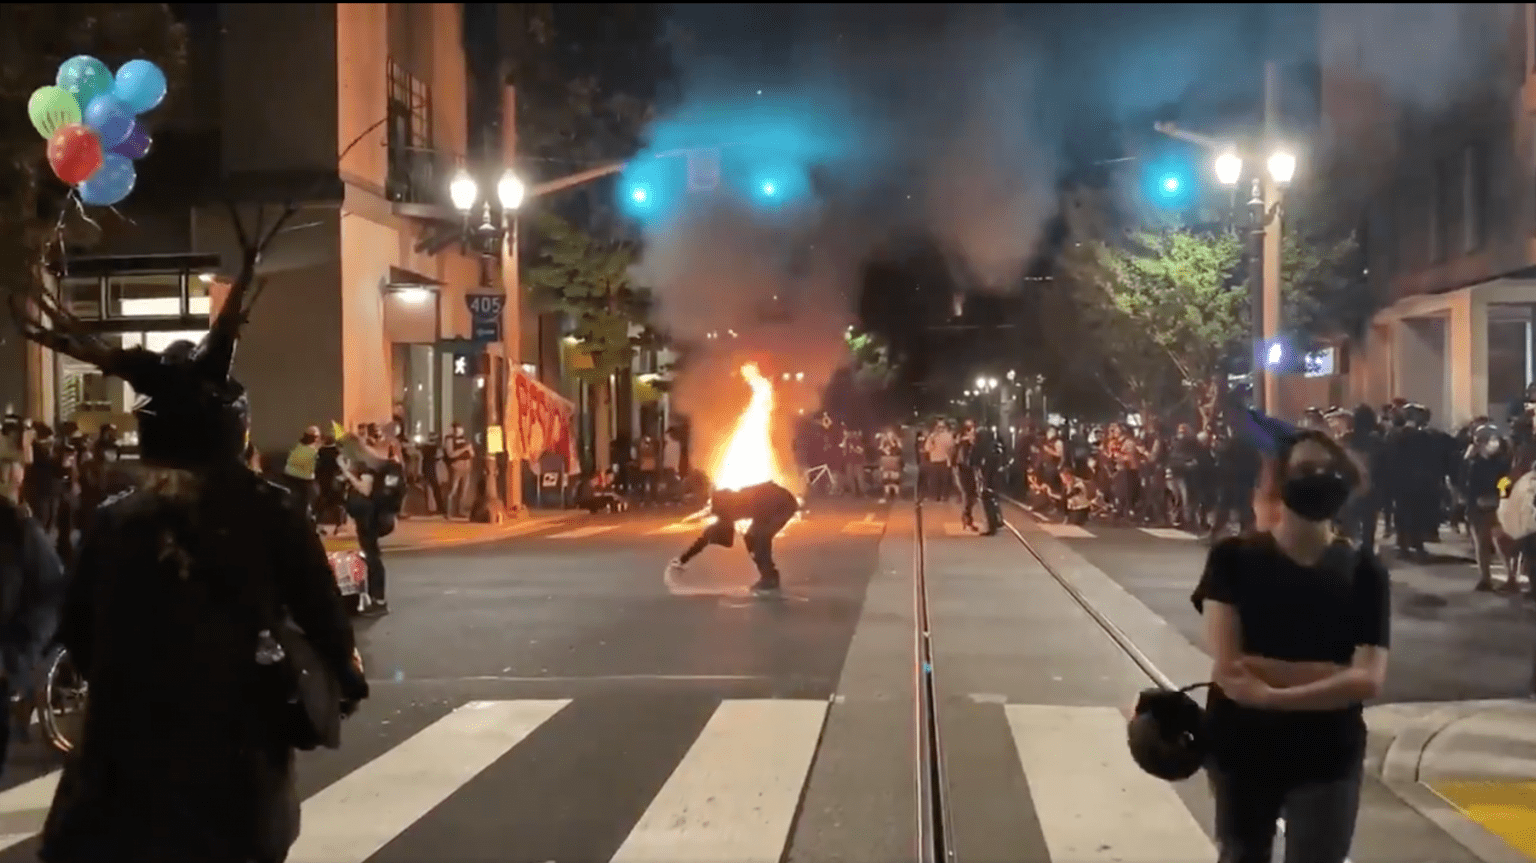 Portland rioters wear party hats, try setting the Mayor's condo on fire on his birthday